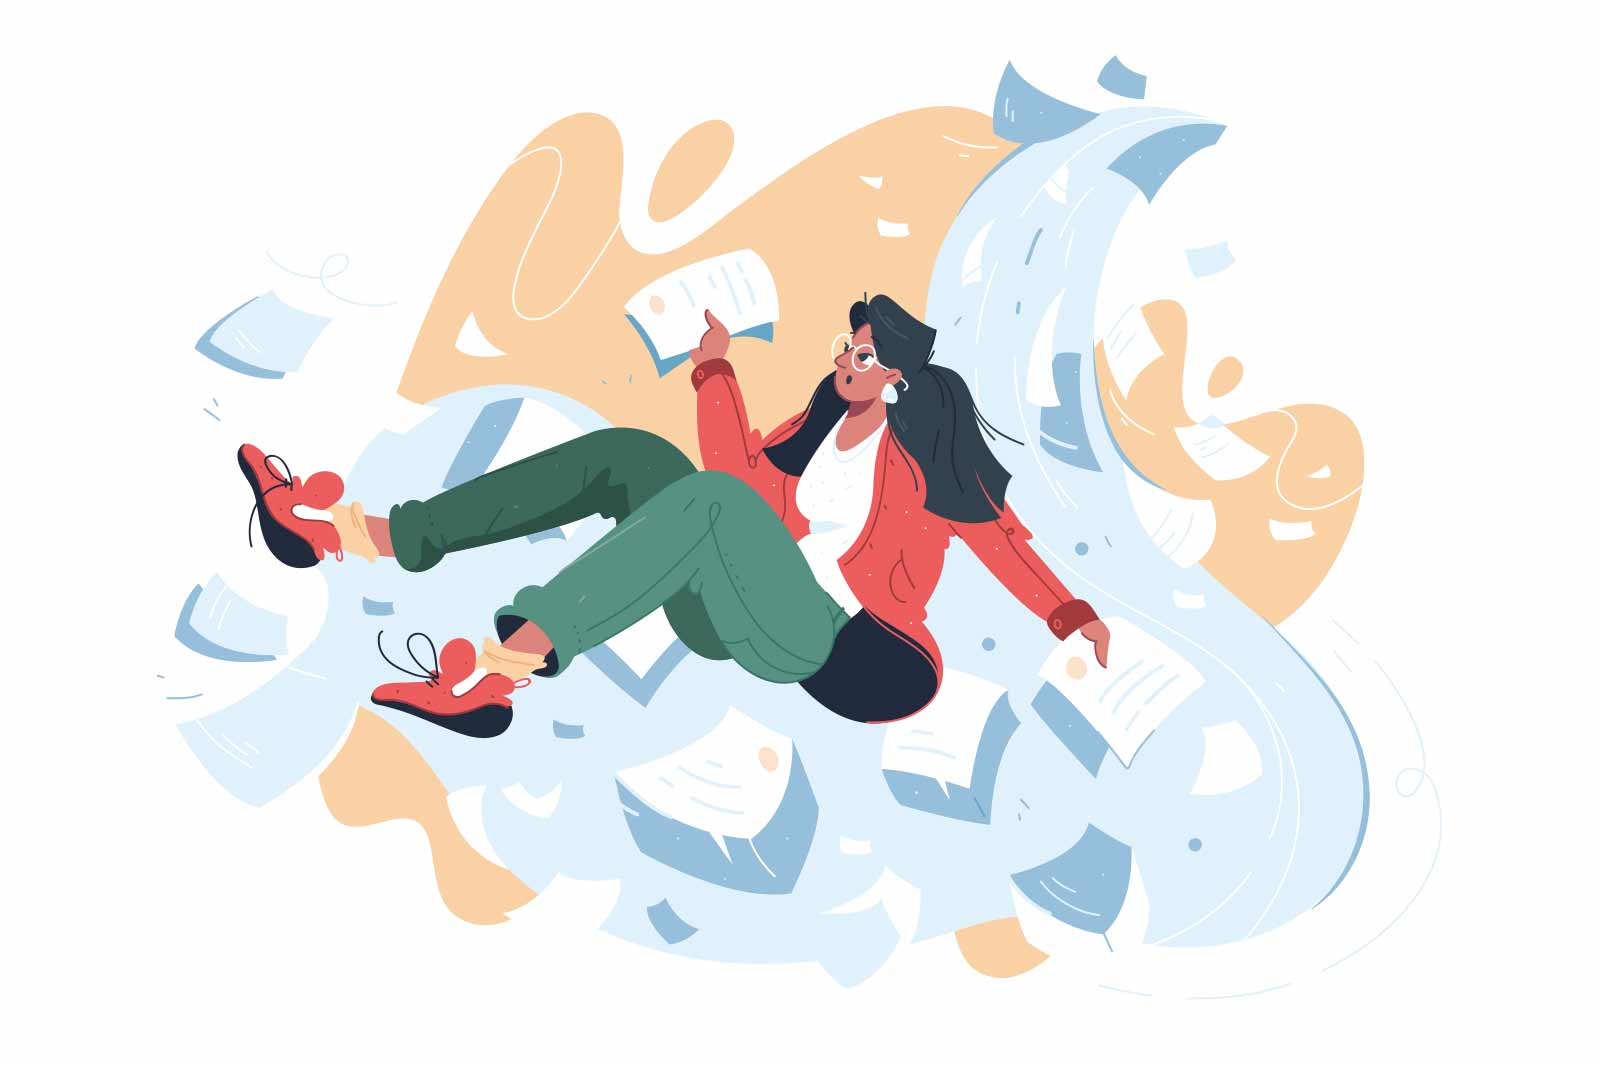 Girl surrounded with pile of documents vector illustration. Stressed office clerk with papers flat style. Deadline, overwork, stress concept